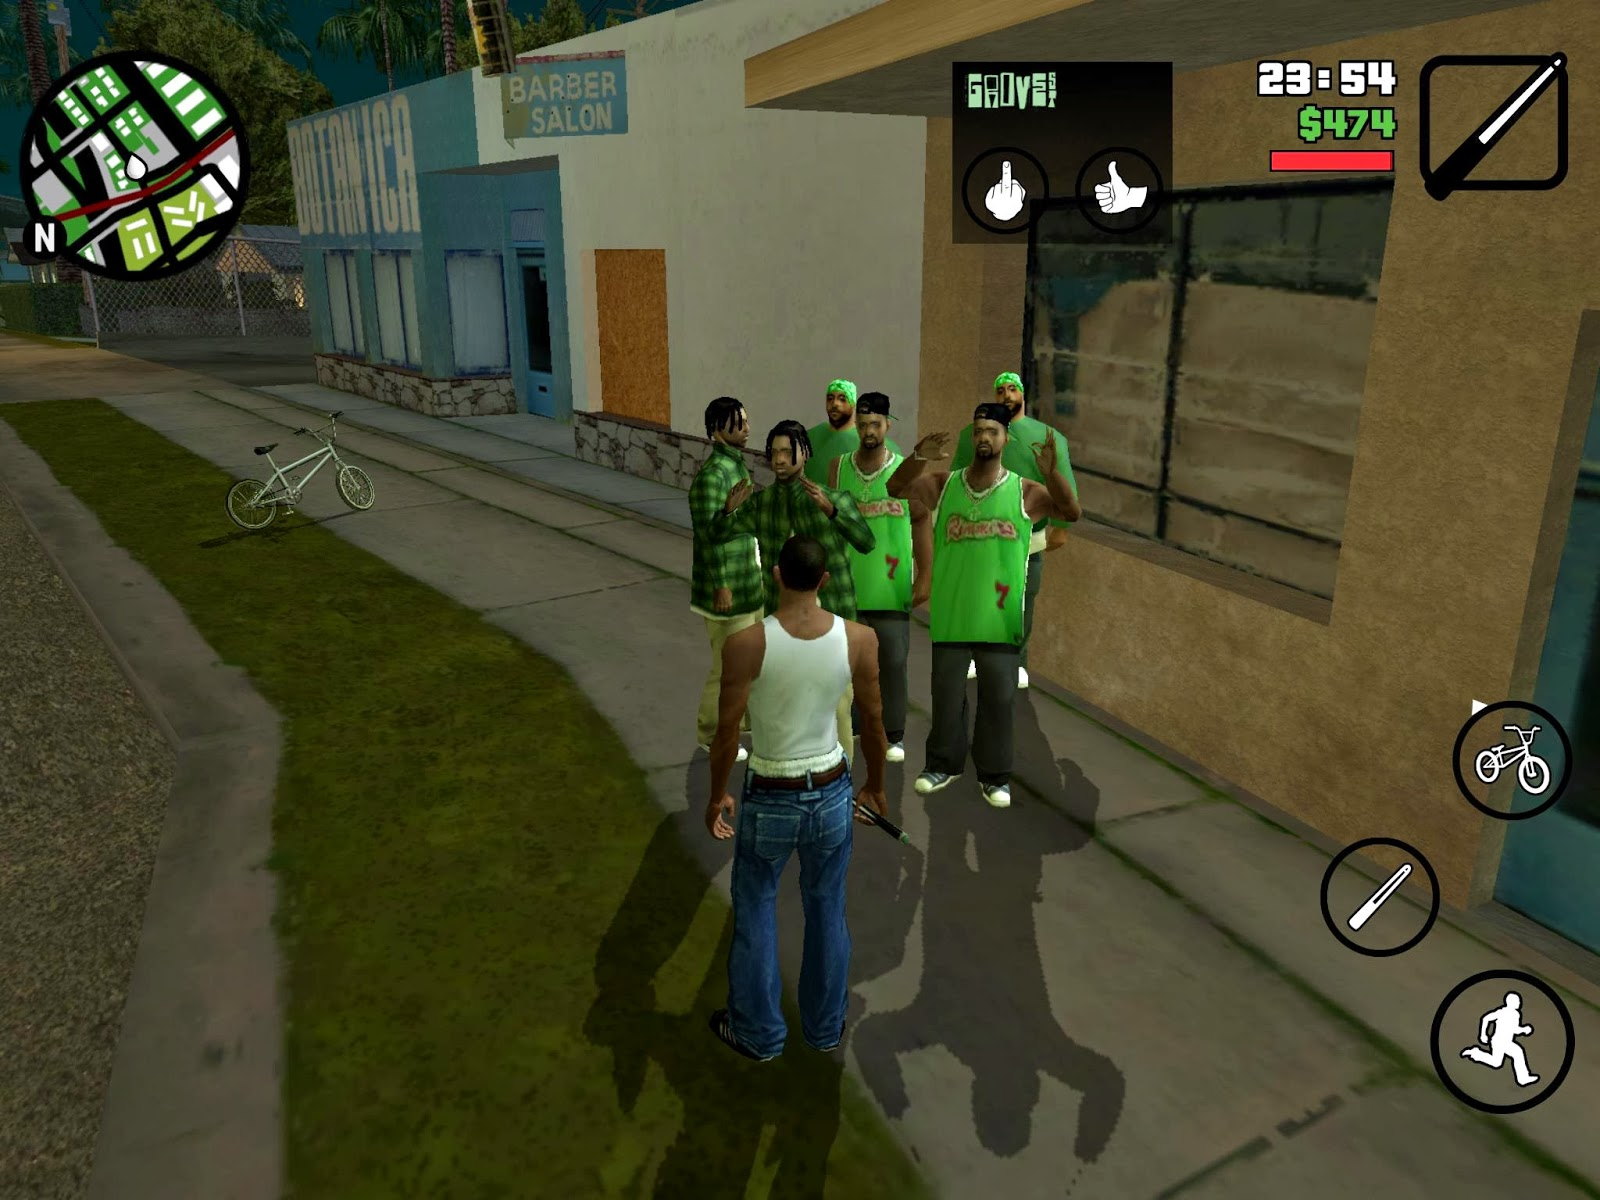 GTA SAN ANDREAS ANDROID CHEAT MOD APK FREE DOWNLOAD (Unlimited Ammo